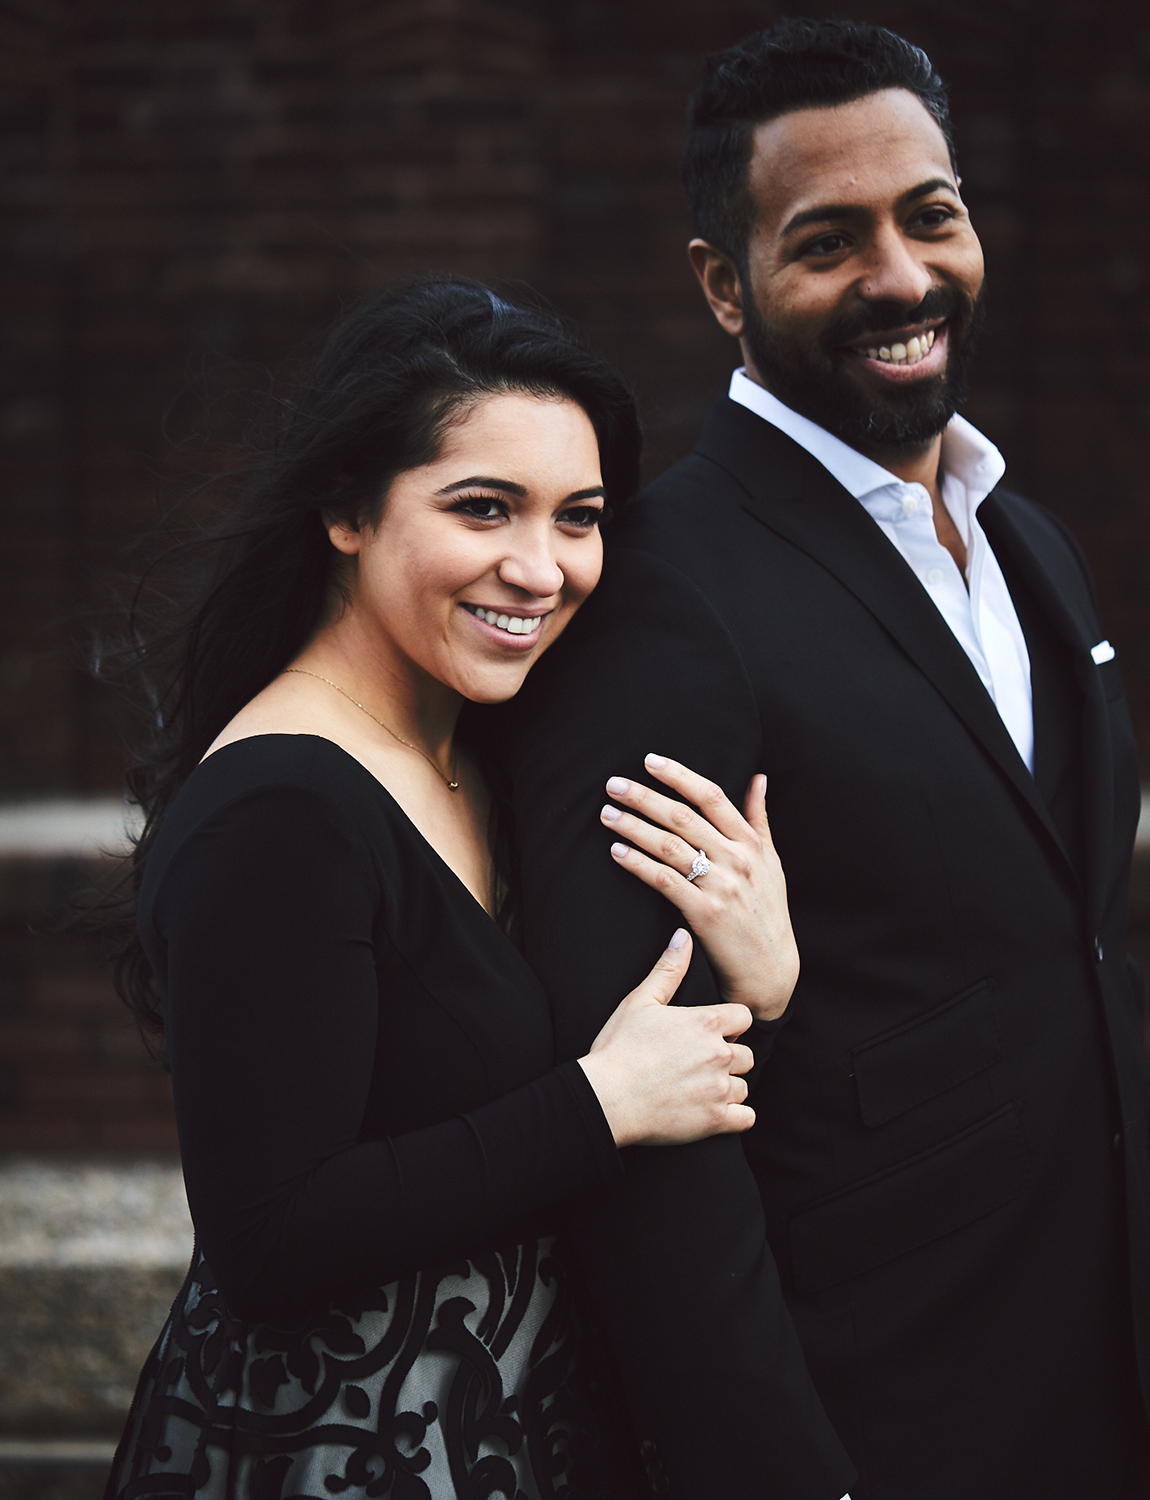 180416_MontclairEngagementPhotography_NJEngagementPhotography_By_BriJohnsonWeddings_0407.jpg